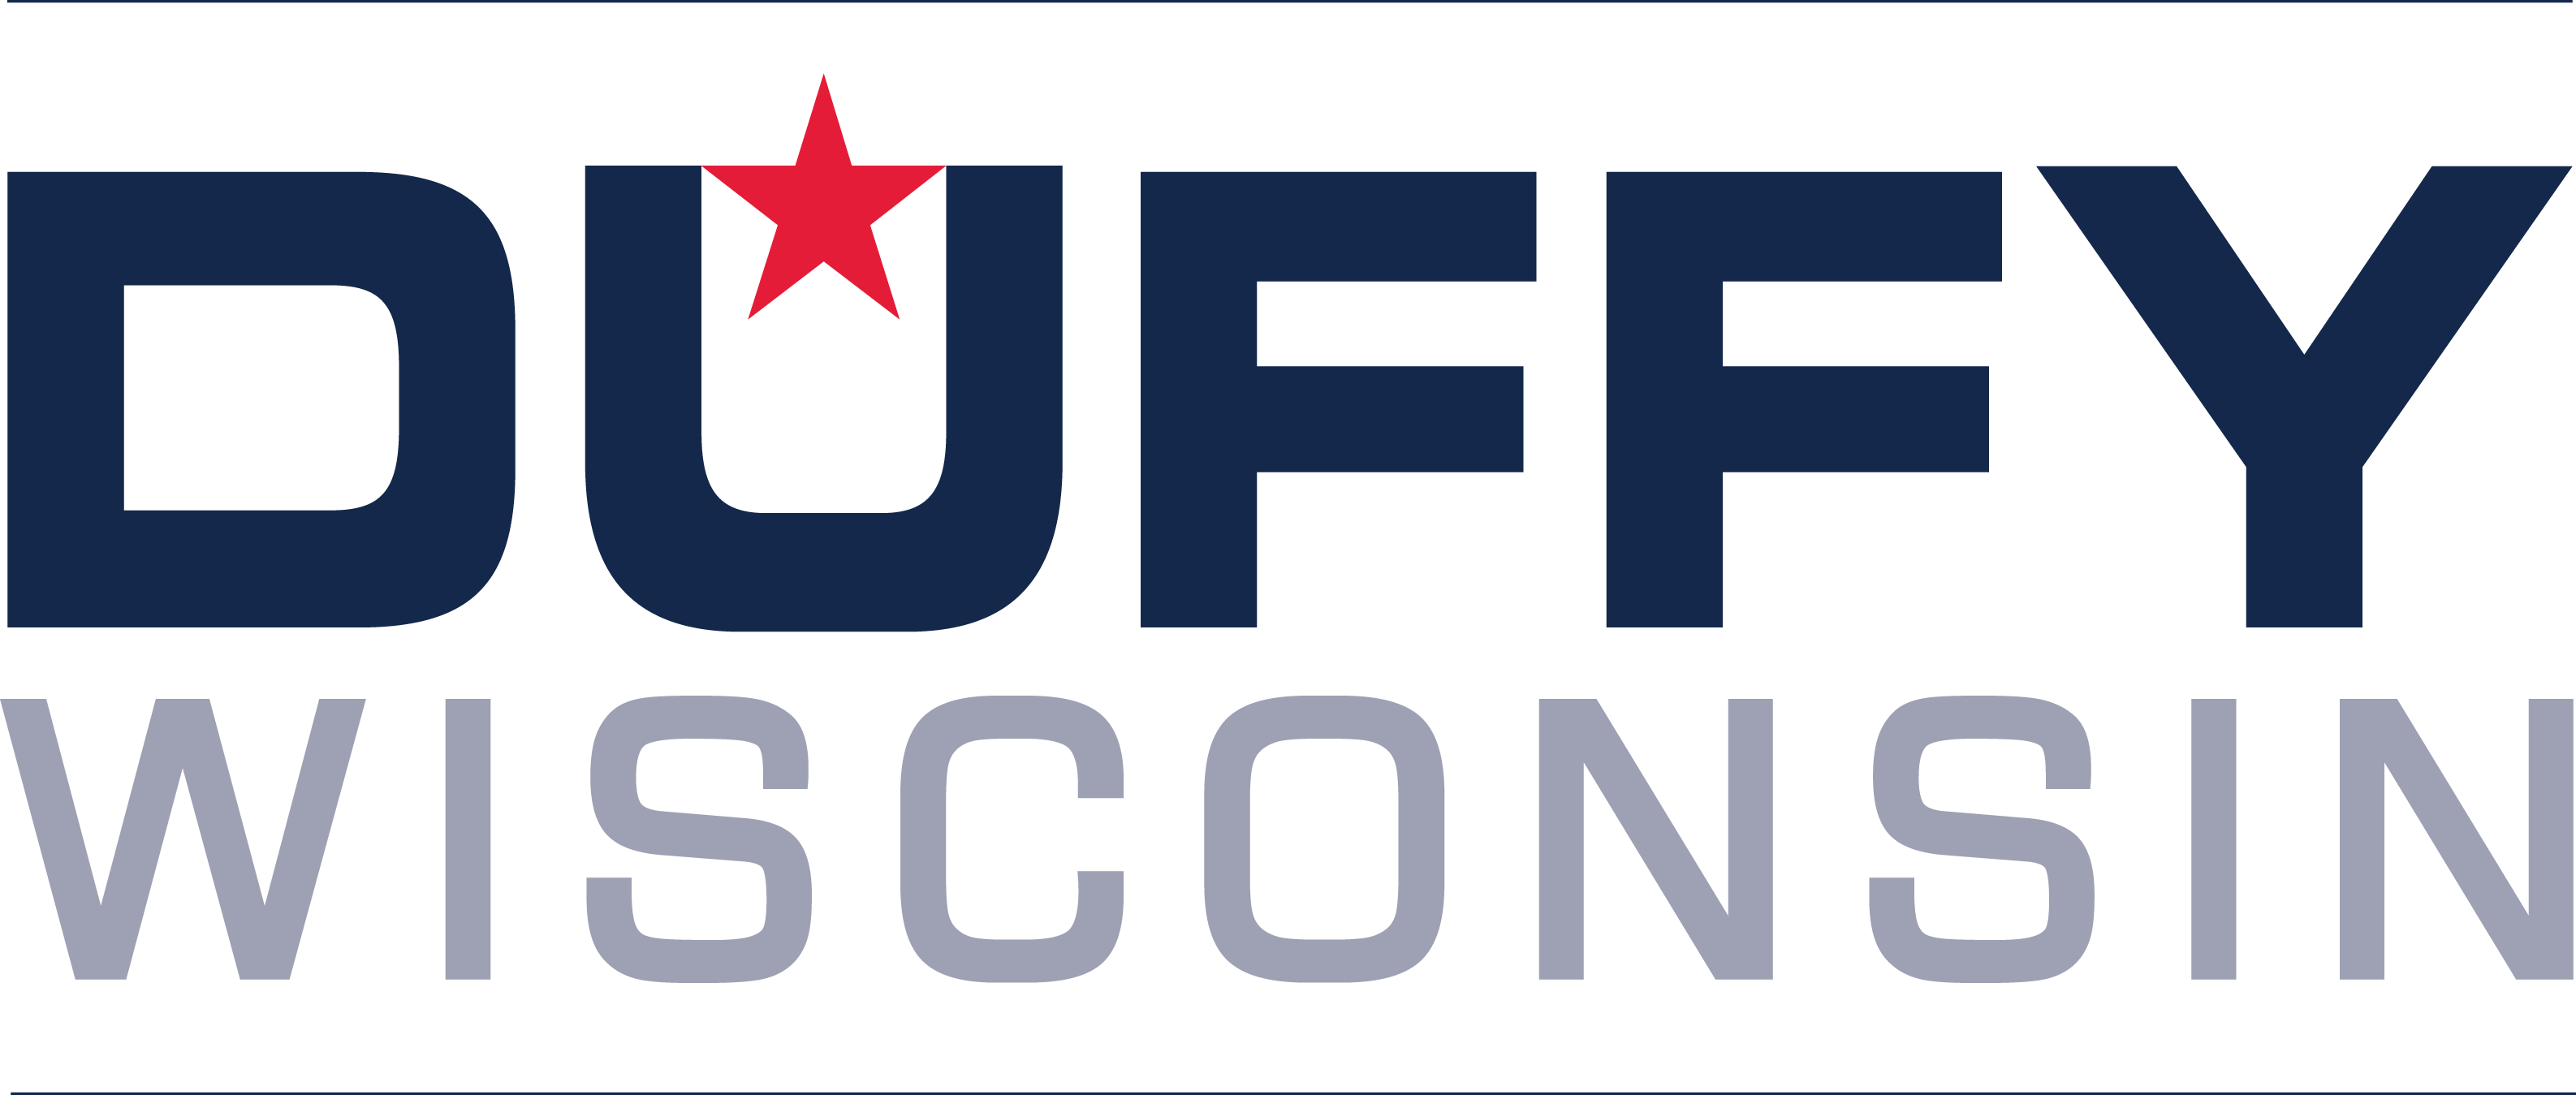 Duffy wisconsin logo